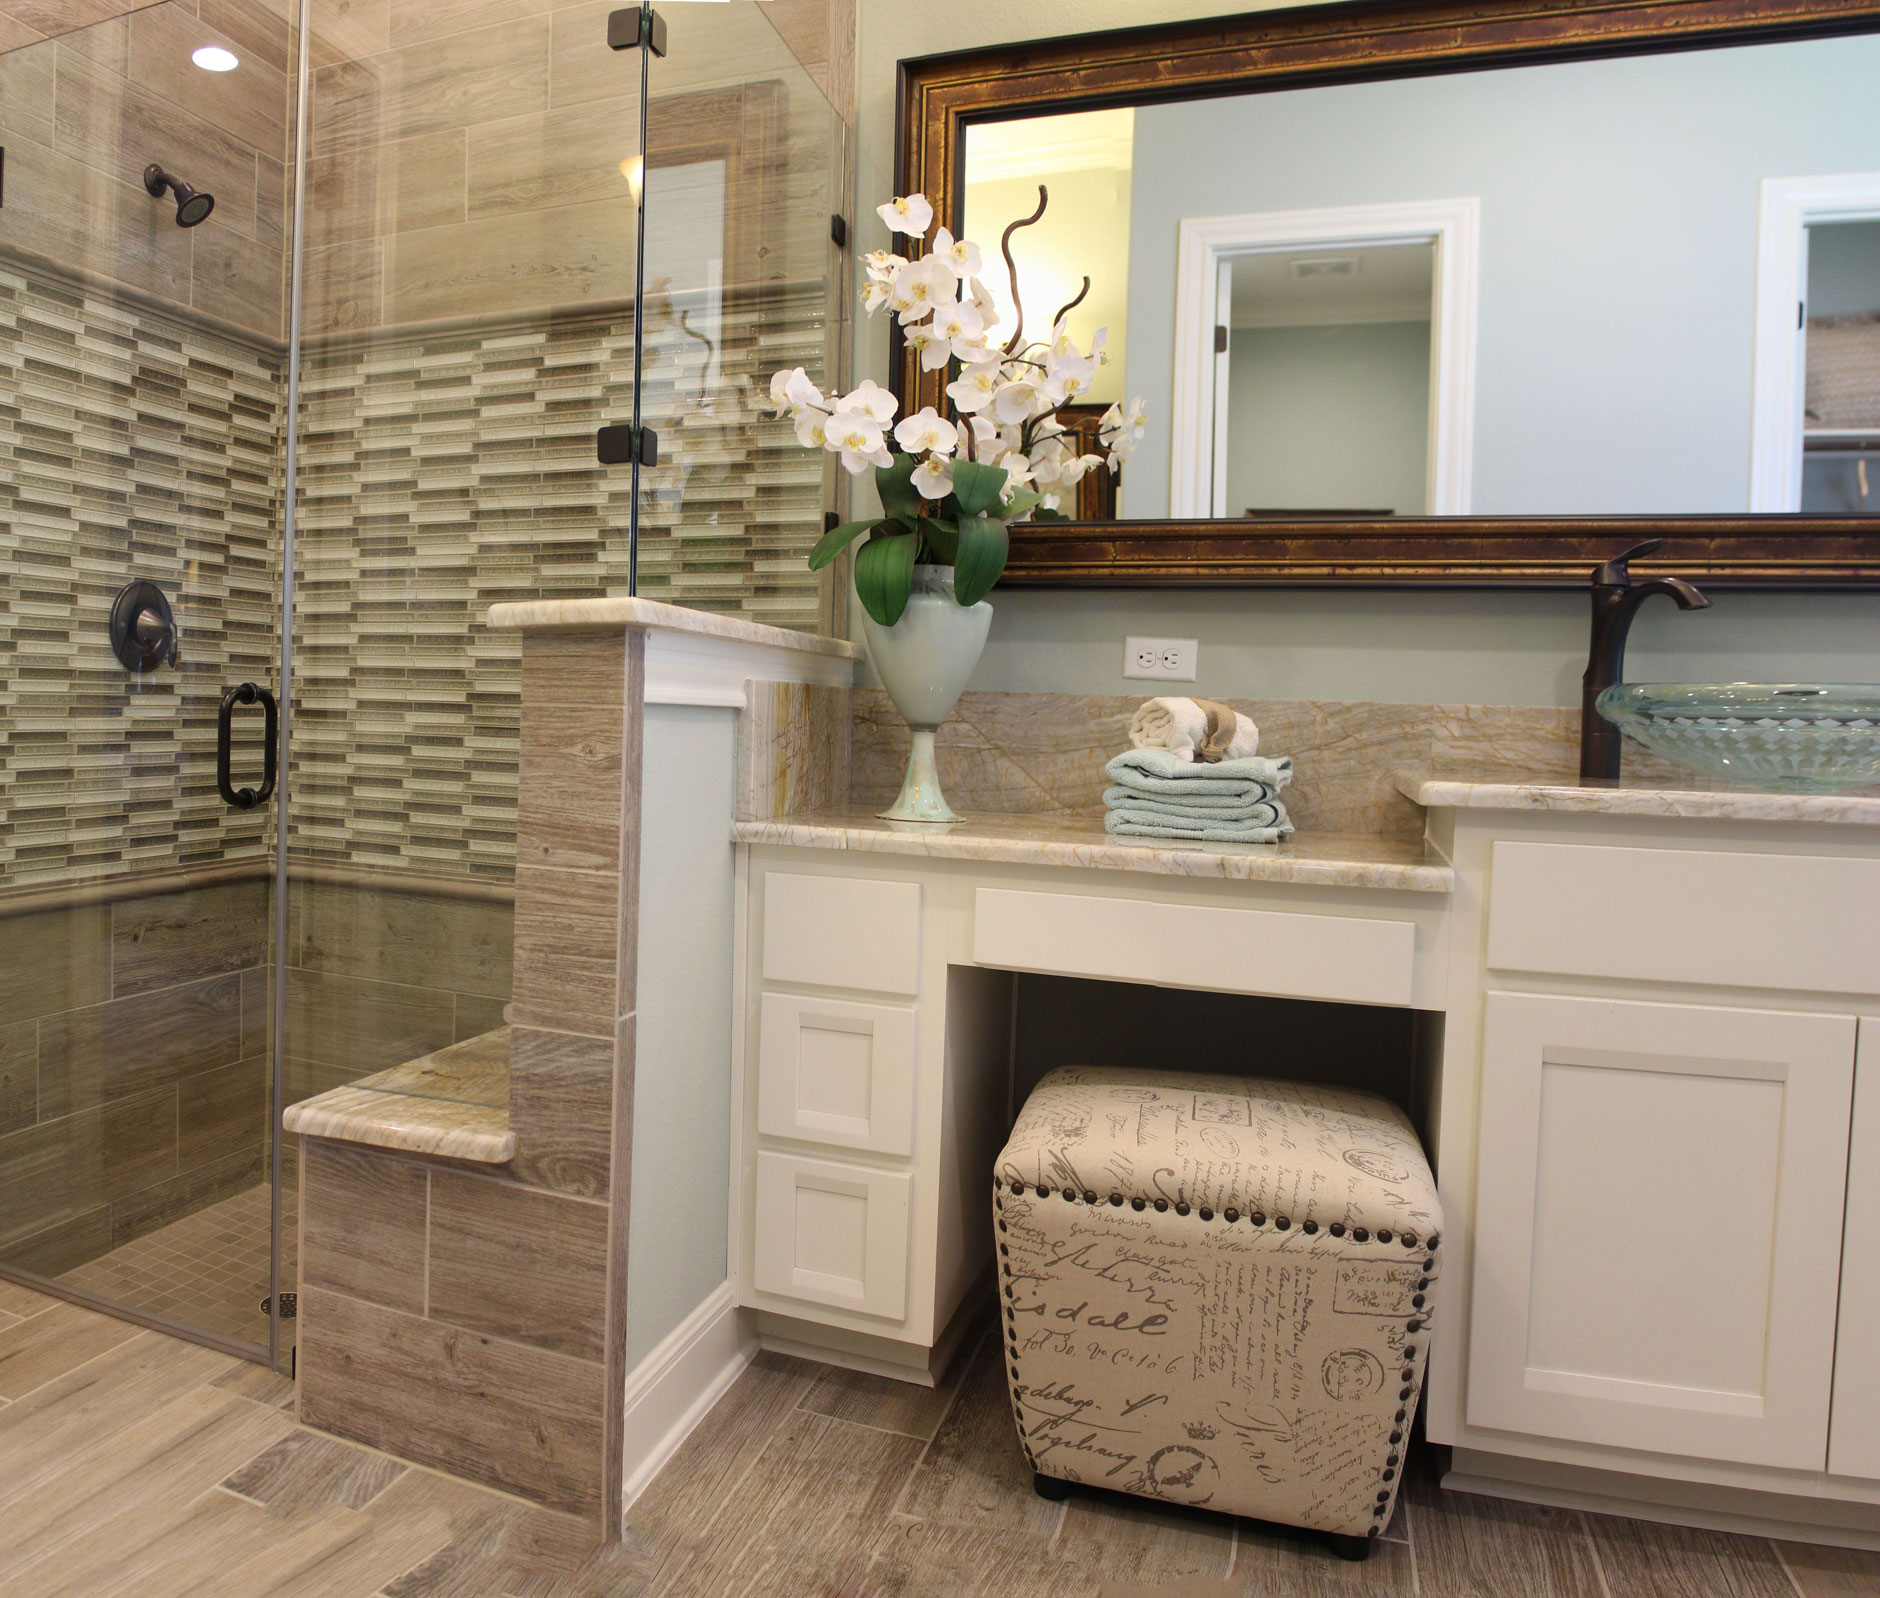 Burrows Cabinets' master bath cabinets in Bone with Briscoe doors and knee space